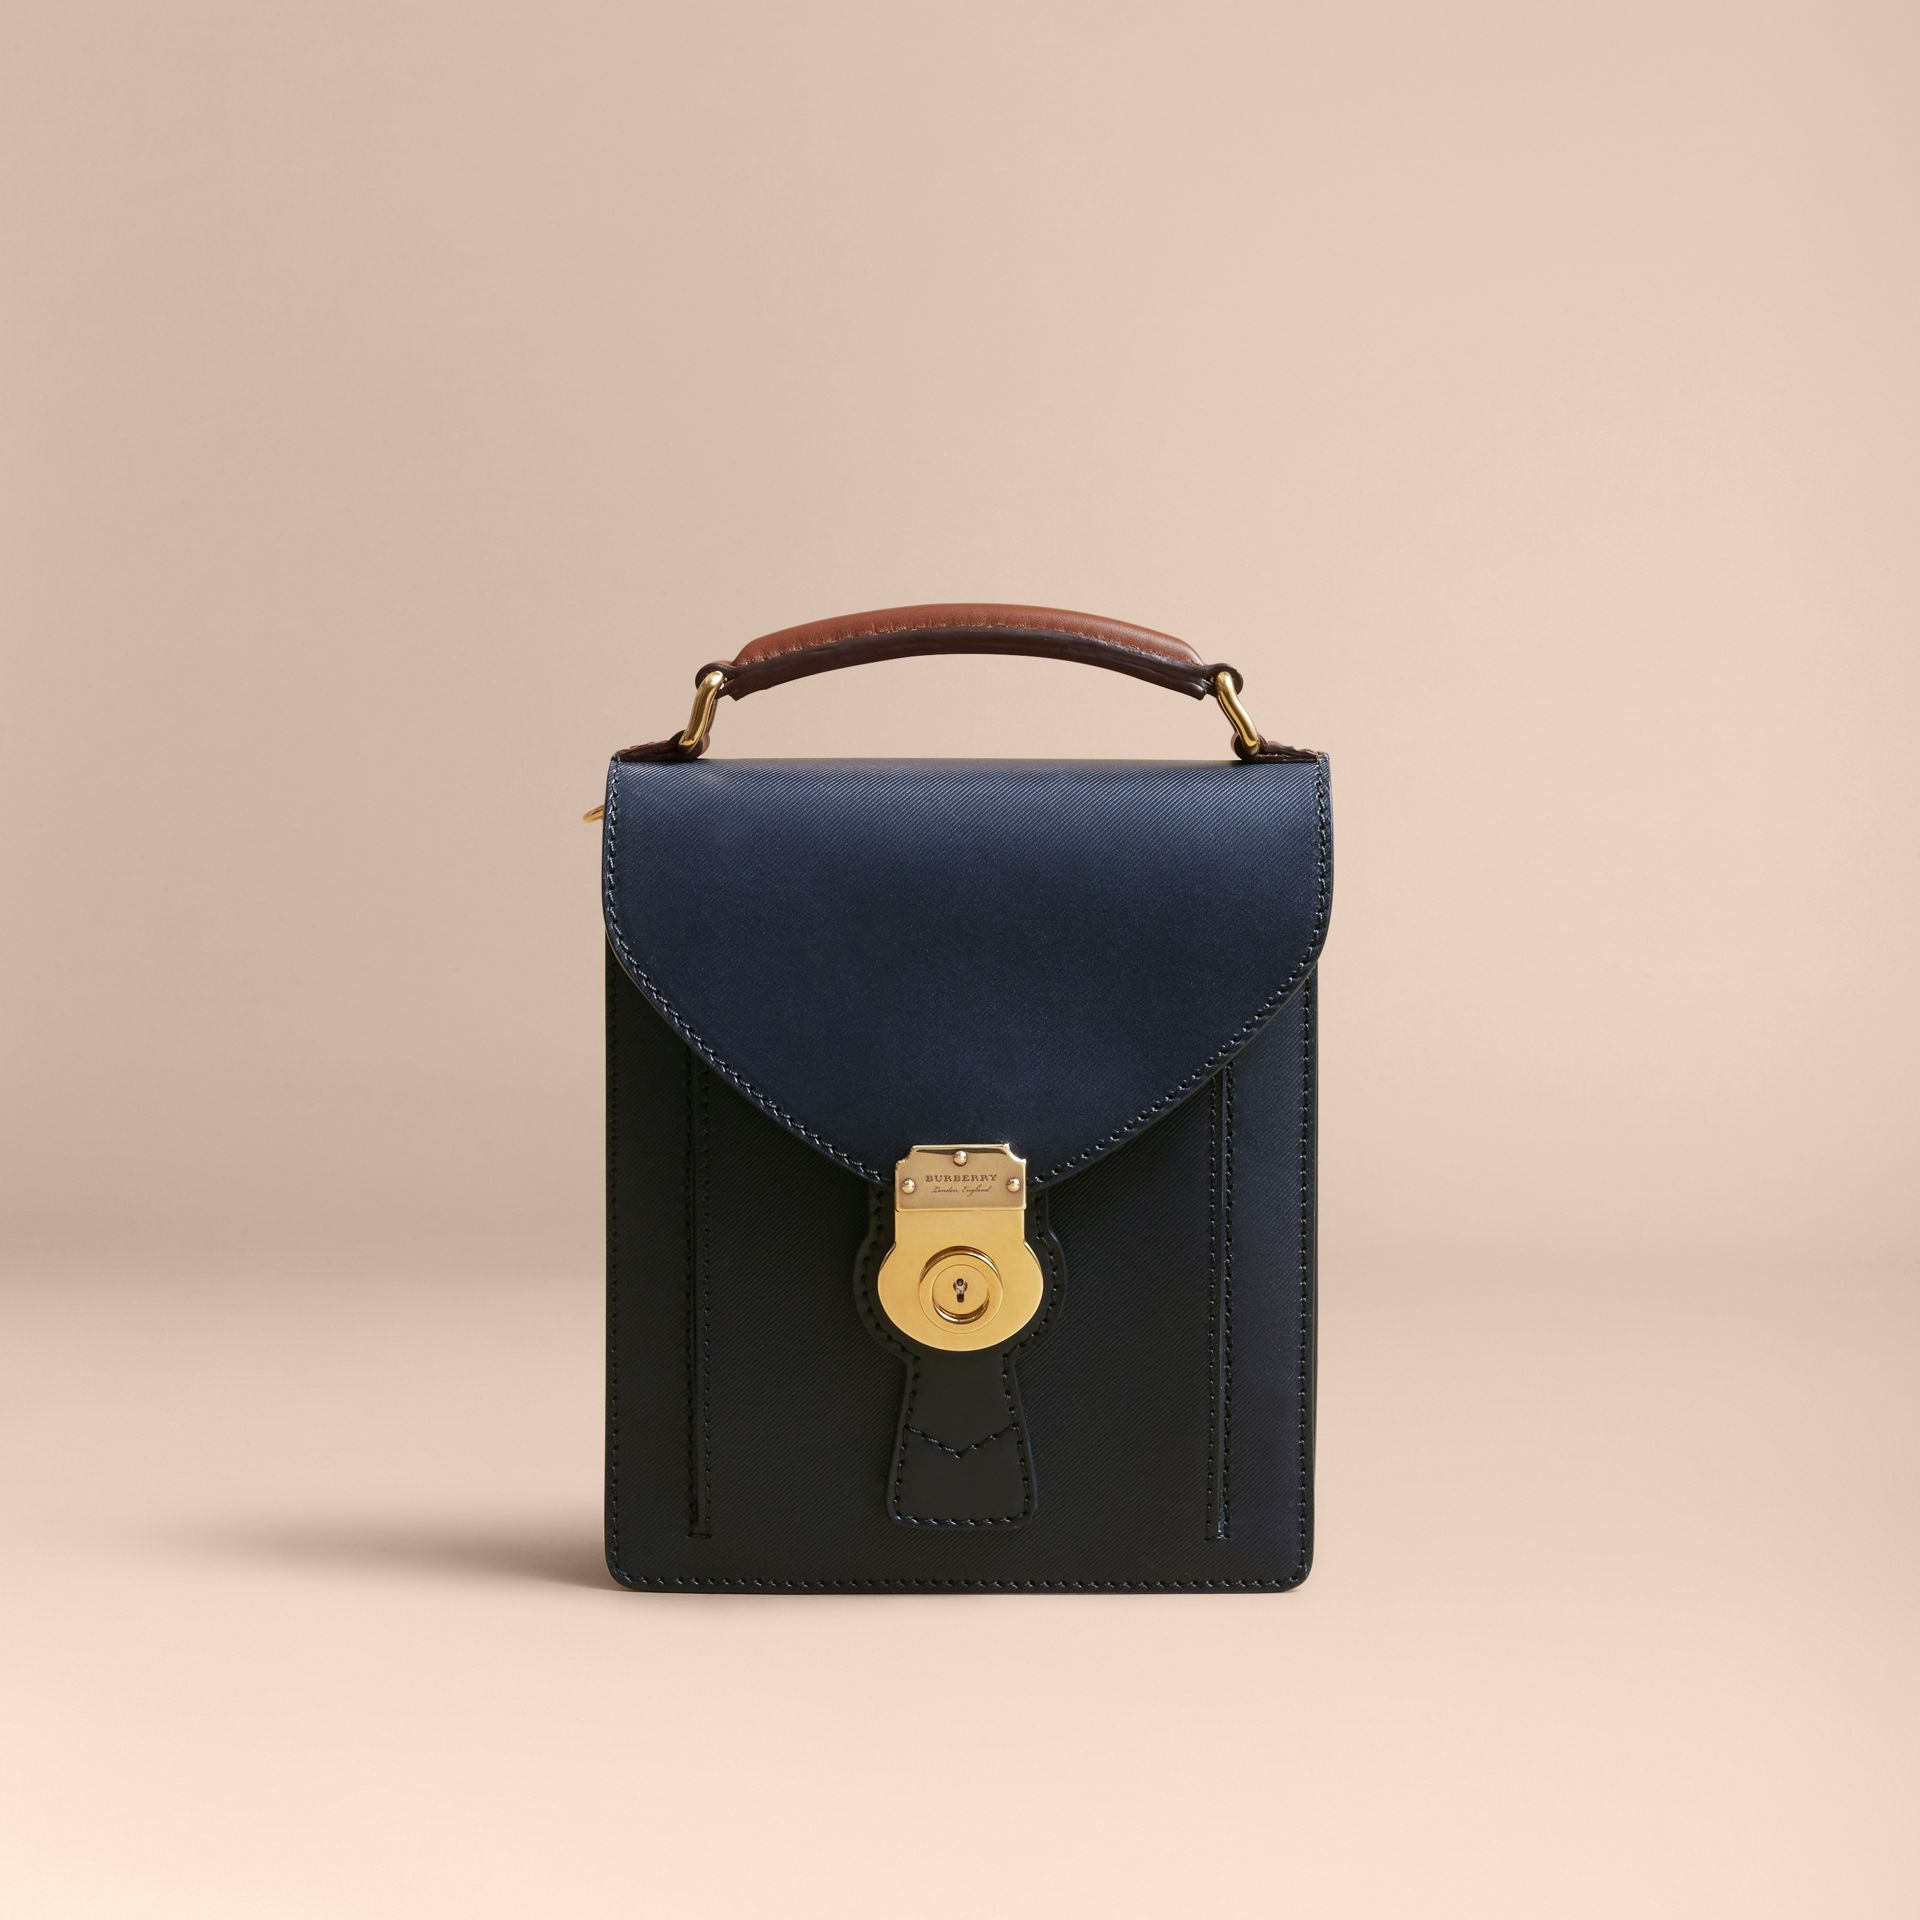 3e2798860a83 The Small DK88 Satchel by Burberry — Thread